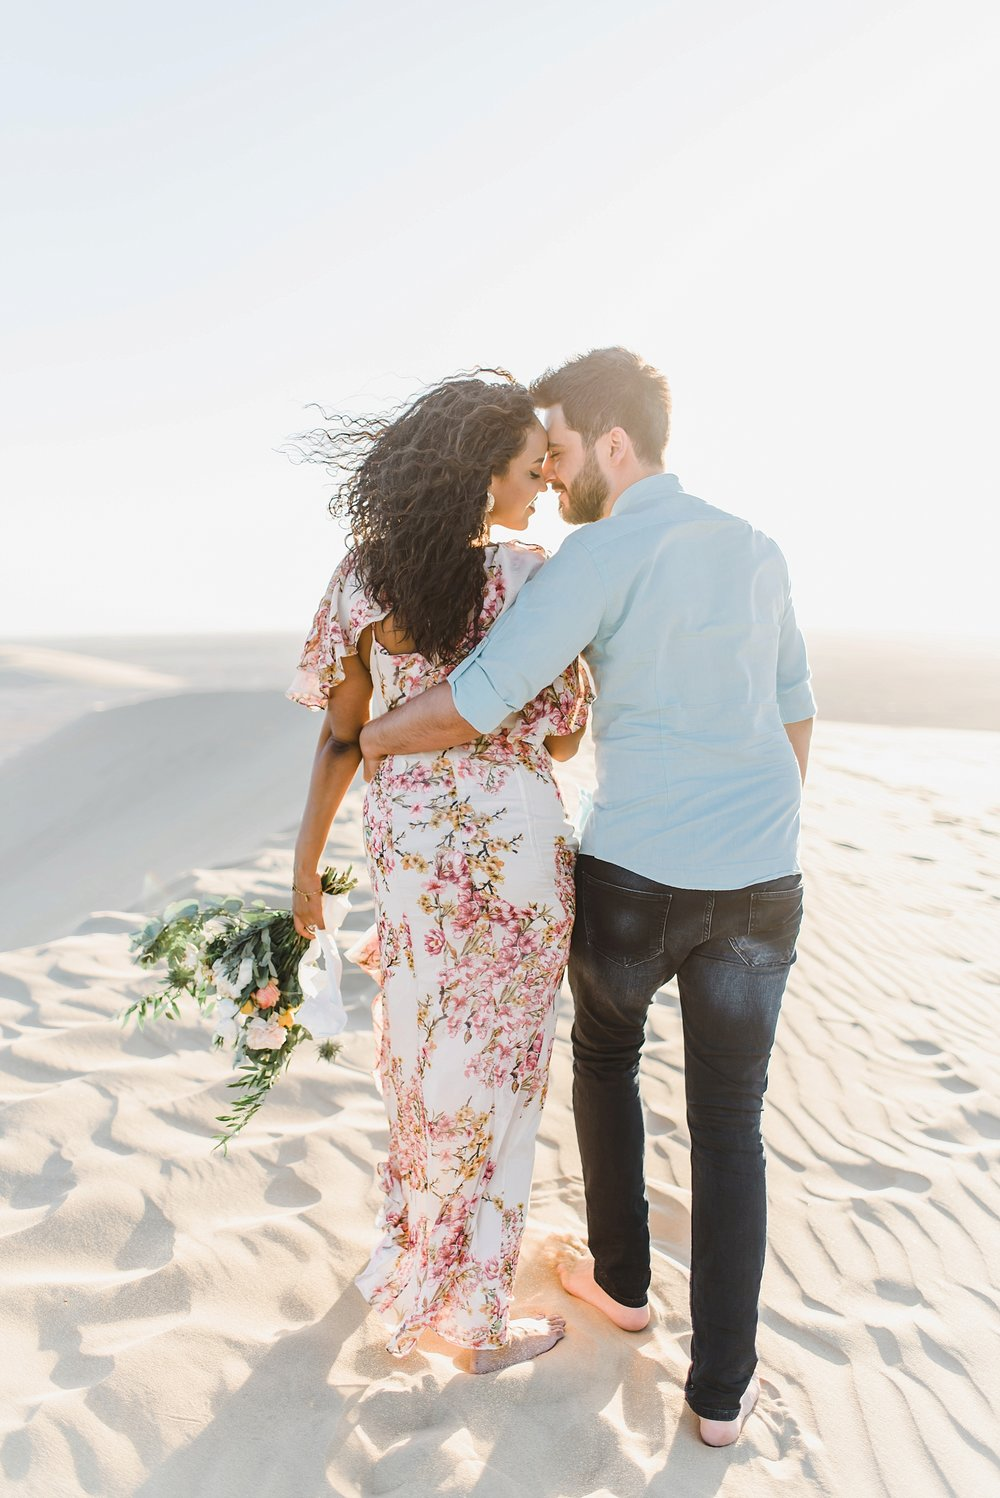 Singing Sand Dunes Desert Love Shoot | Ali and Batoul Photography_0045.jpg